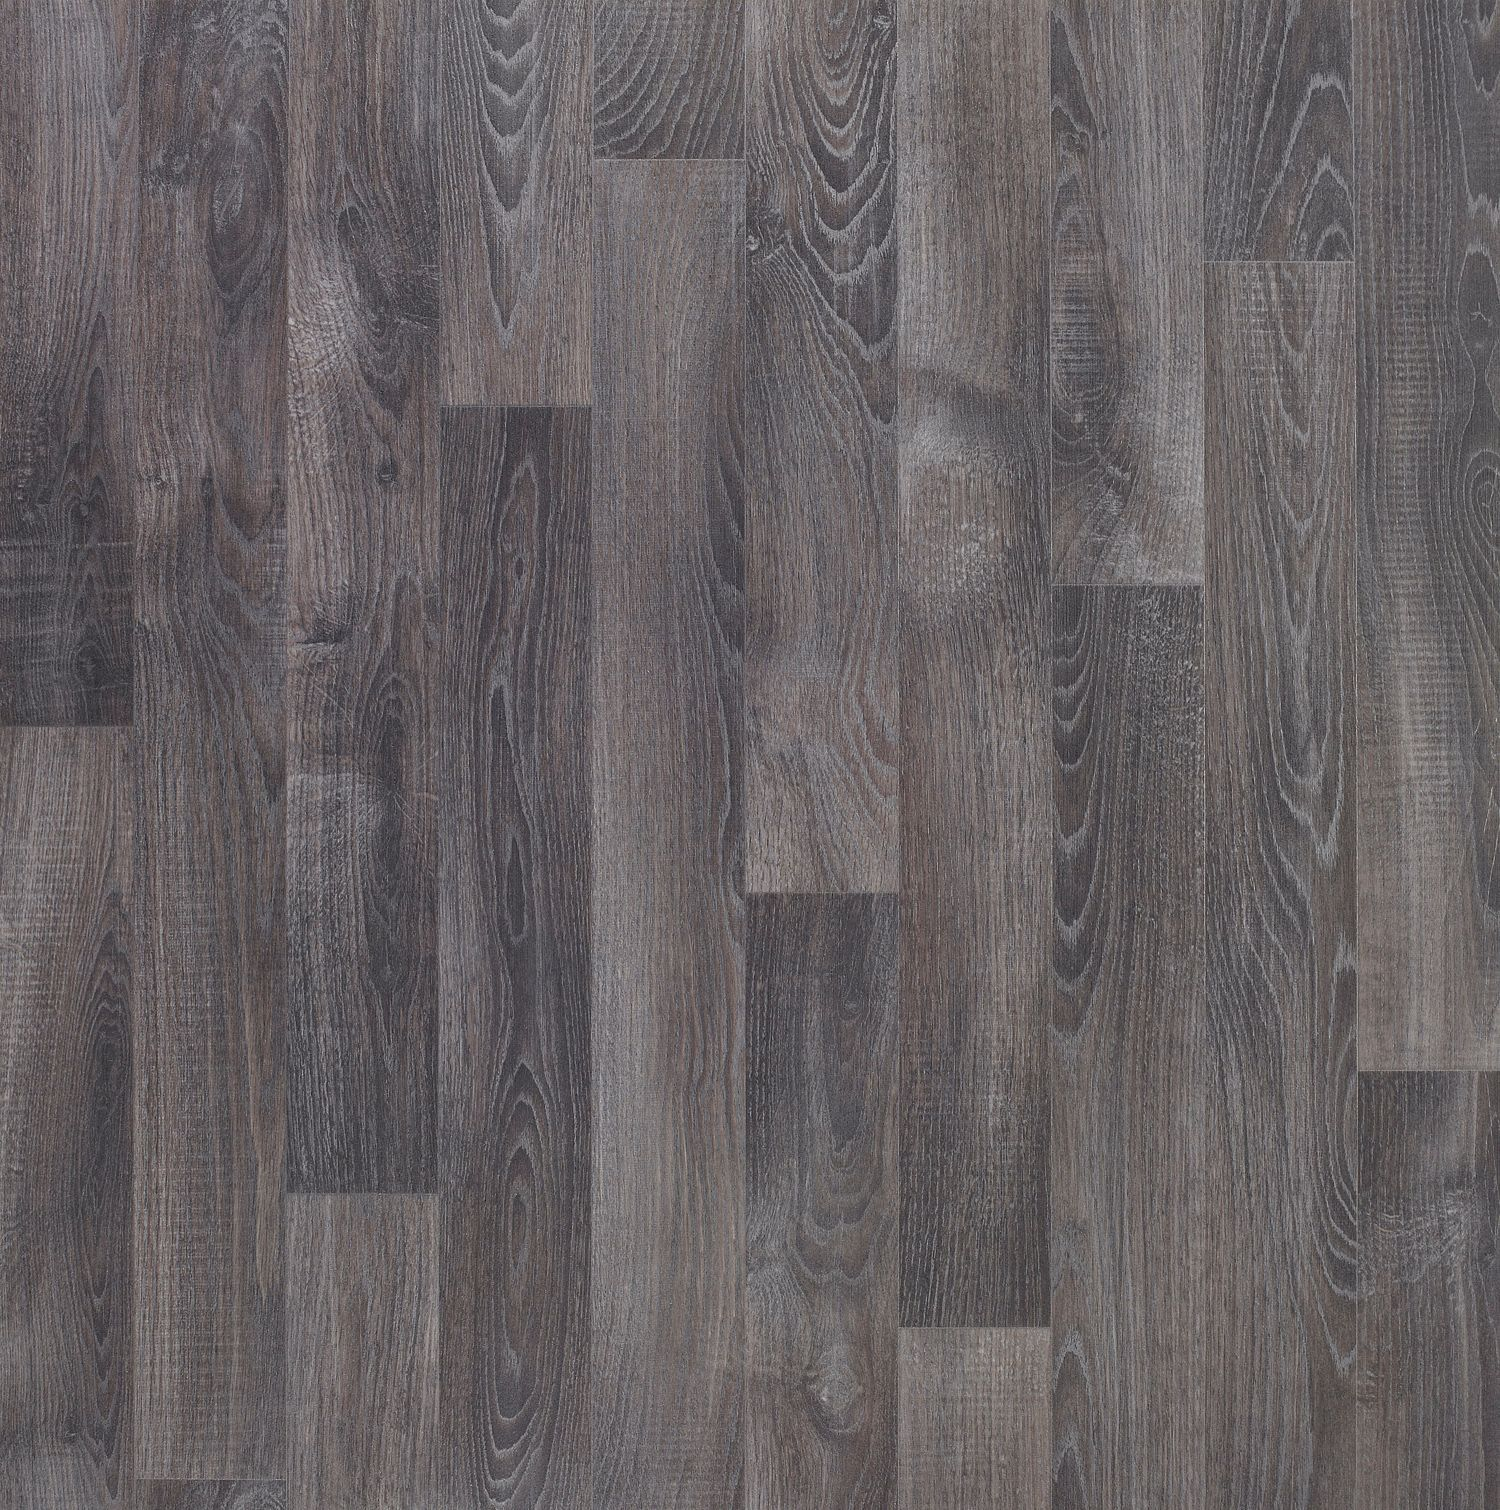 Dark Grey Oak Effect Vinyl Flooring 4 M 178 Departments Diy At B Amp Q